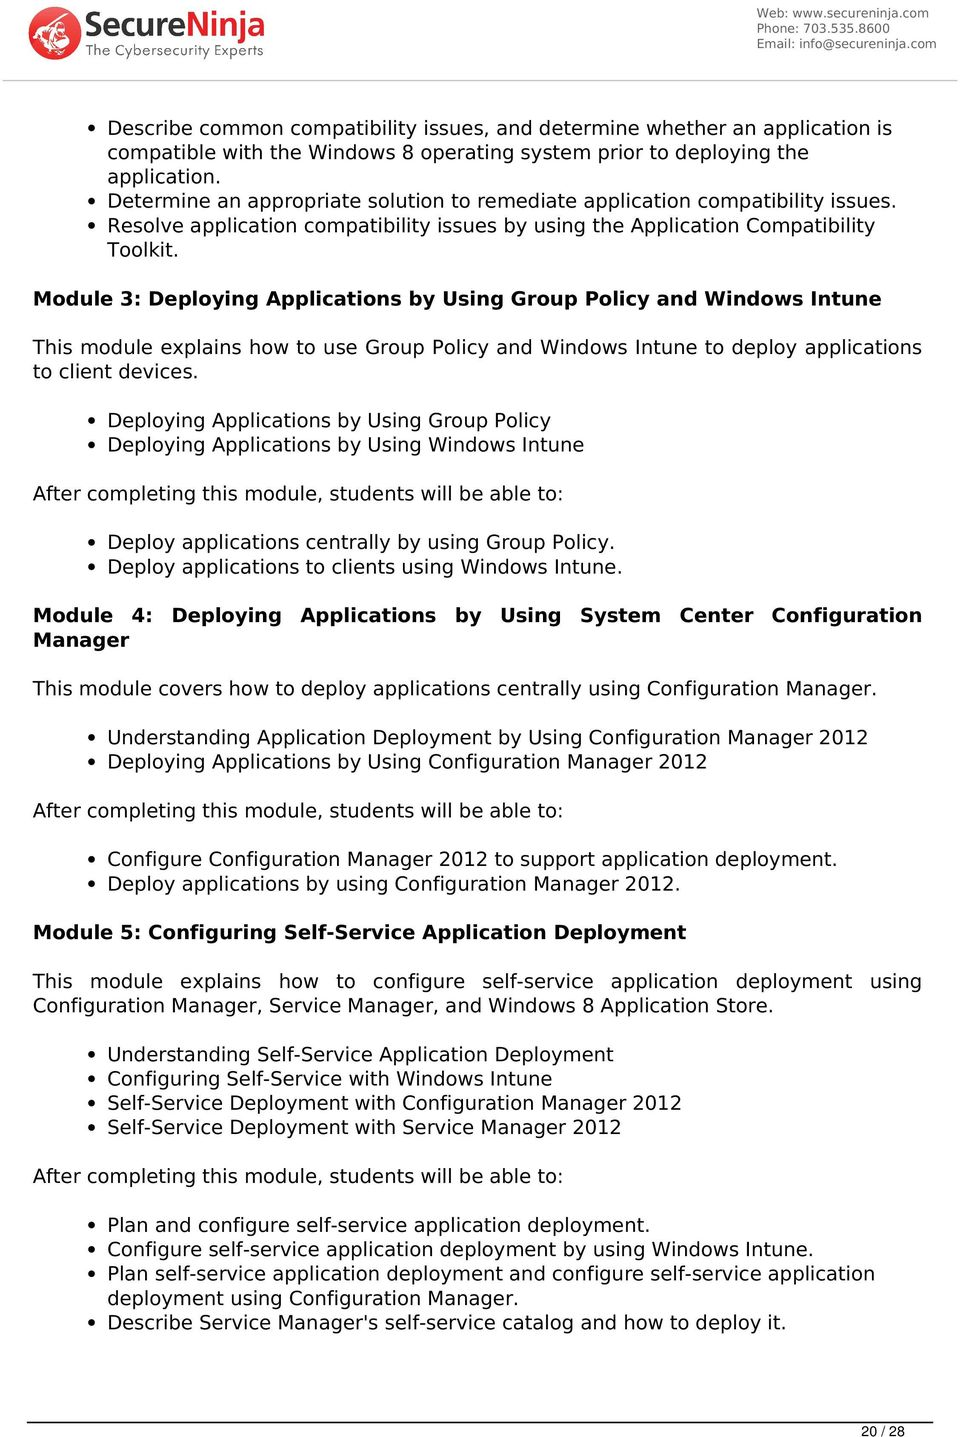 Module 3: Deploying Applications by Using Group Policy and Windows Intune This module explains how to use Group Policy and Windows Intune to deploy applications to client devices.